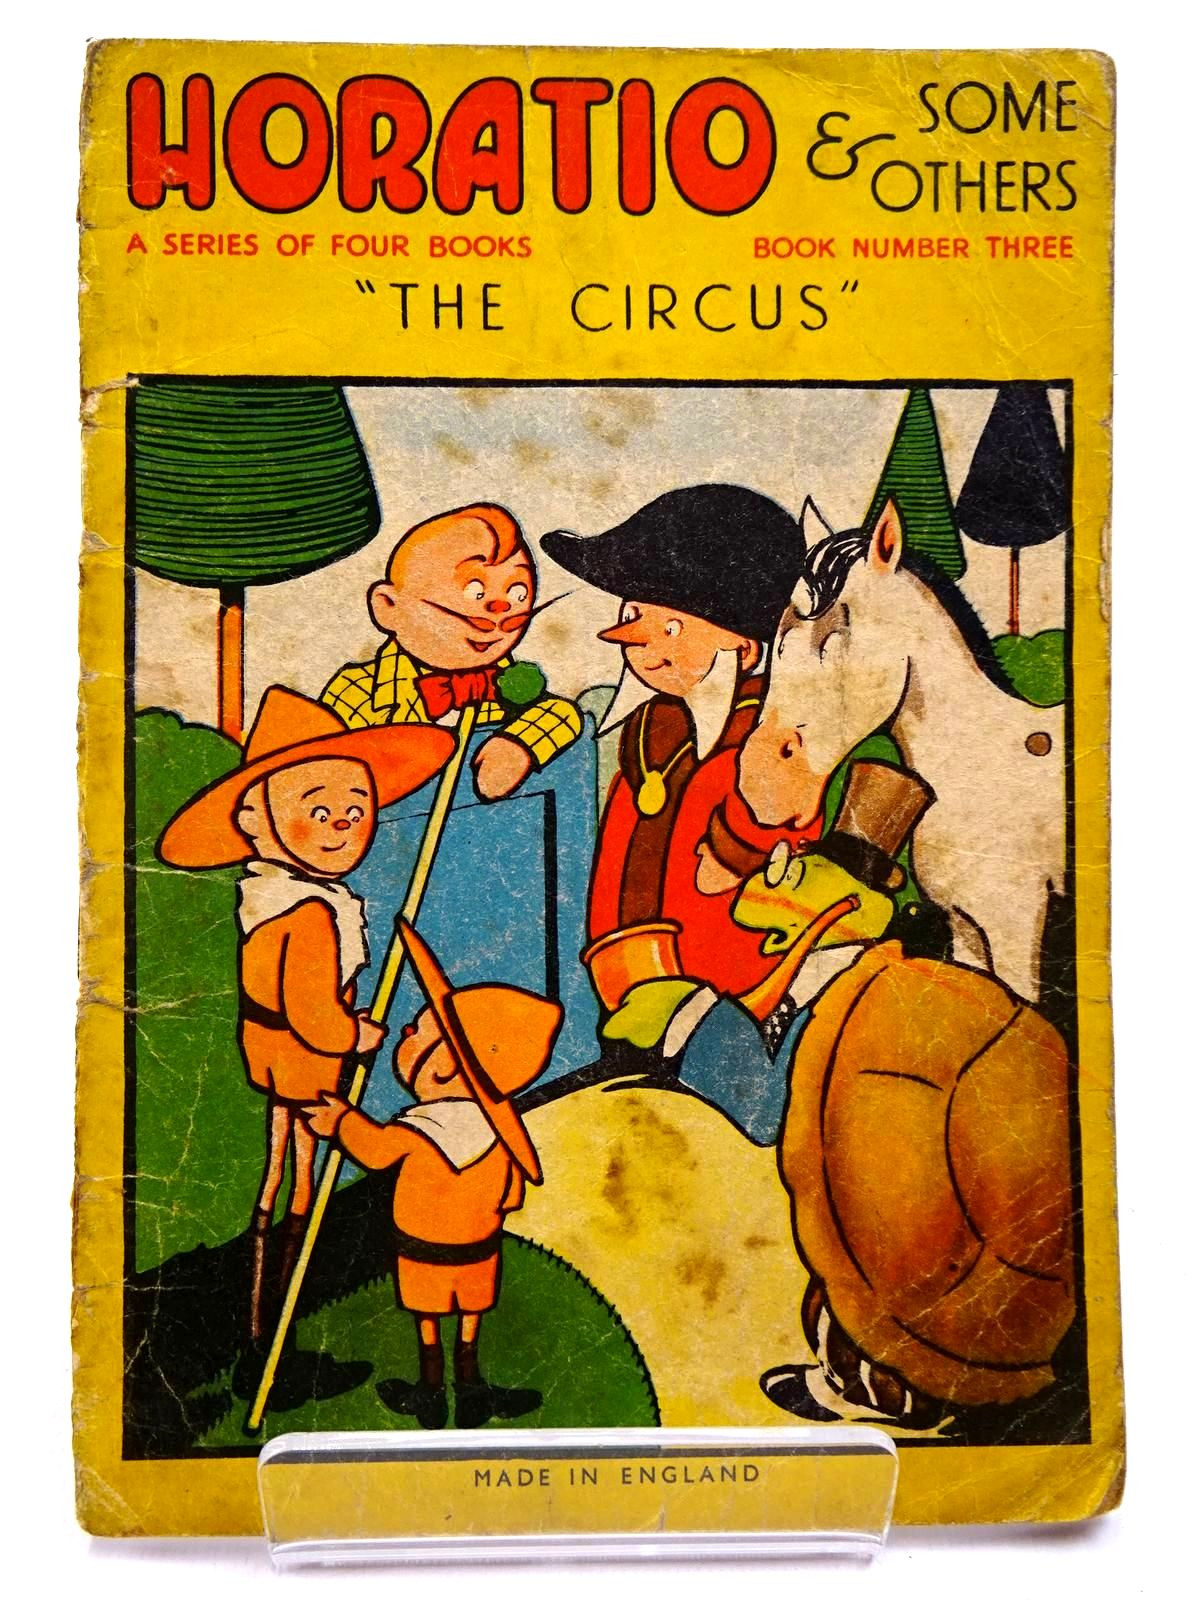 Photo of HORATIO & SOME OTHERS BOOK NUMBER THREE THE CIRCUS published by F. Levy & Co. Ltd. (STOCK CODE: 2131008)  for sale by Stella & Rose's Books